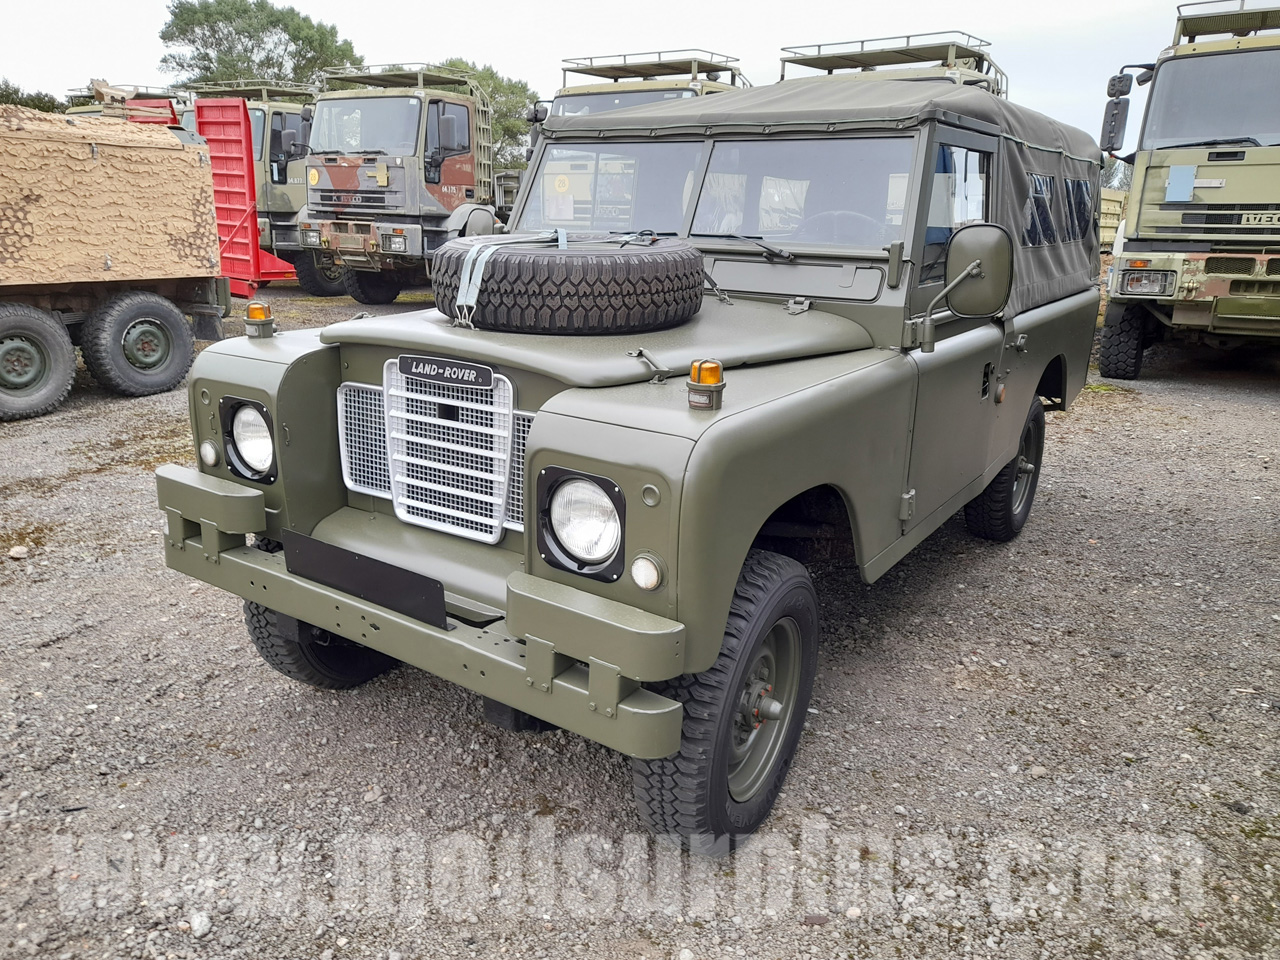 military vehicles for sale - Land Rover Series 3 109 (Diesel)